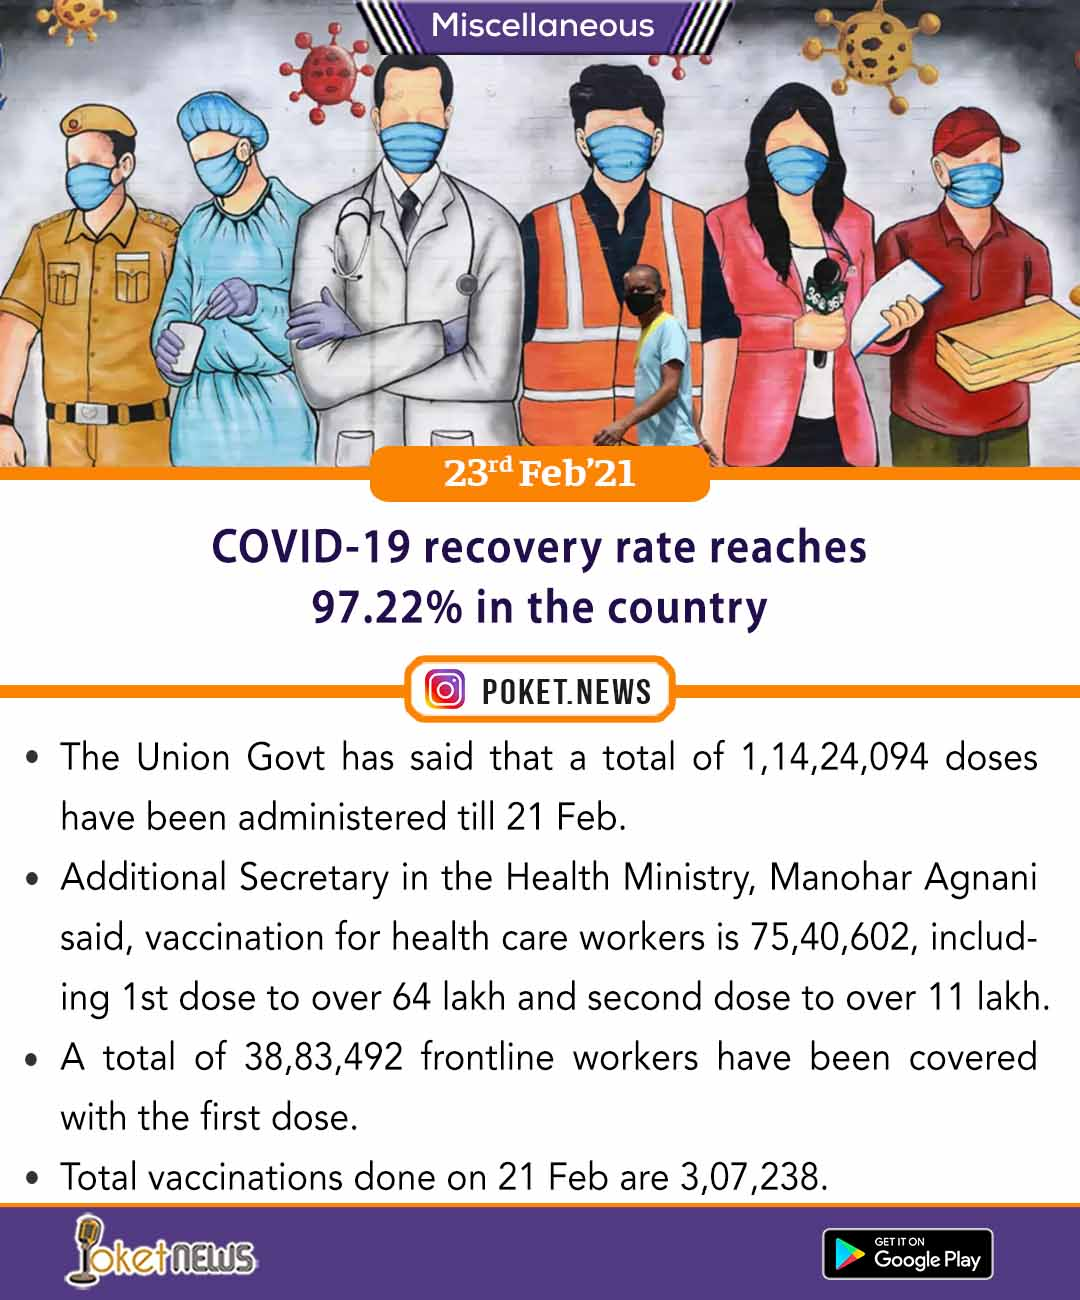 COVID-19 recovery rate reaches 97.22% in the country